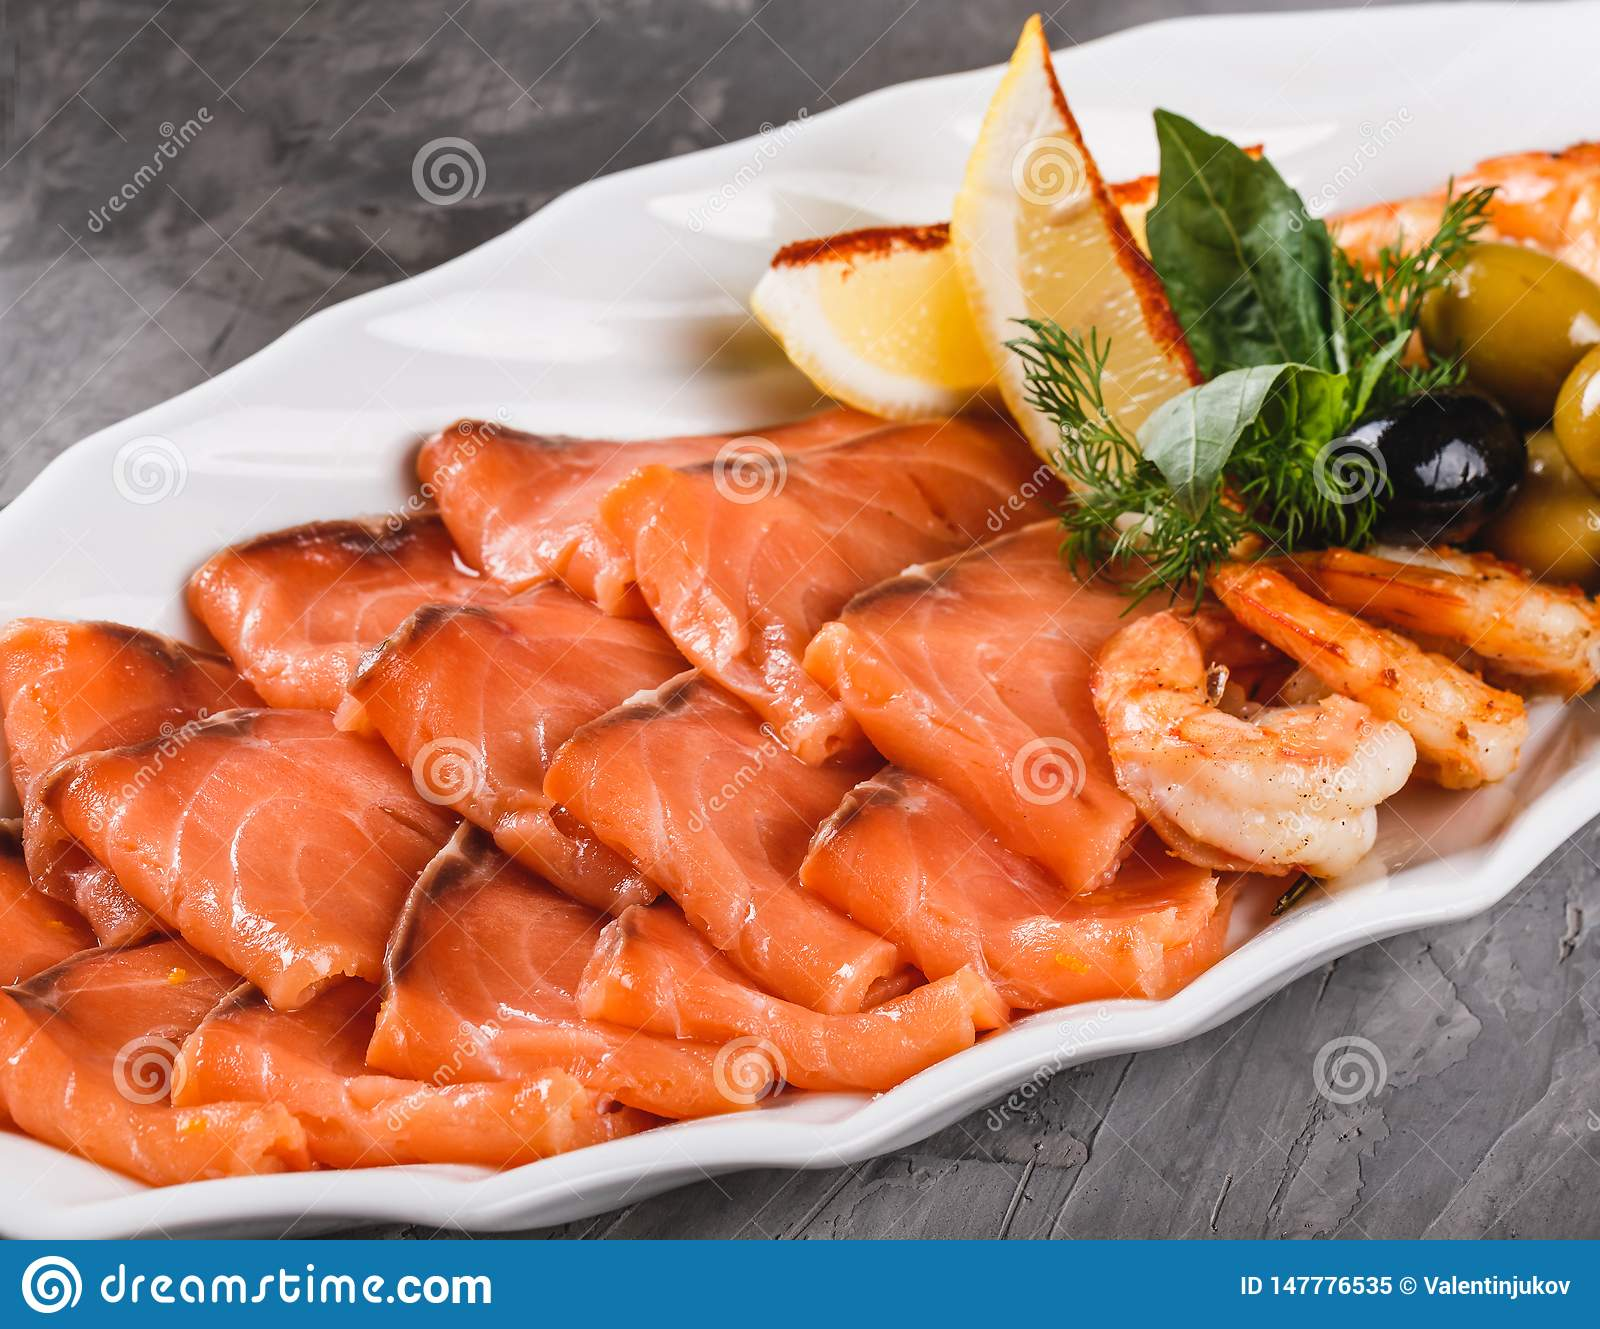 Seafood Platter With Salmon Slice Shrimp Slices Fish Fillet Decorated With Olives And Lemon In Plate Over Rustic Background Stock Image Image Of Salmon Seafood 147776535